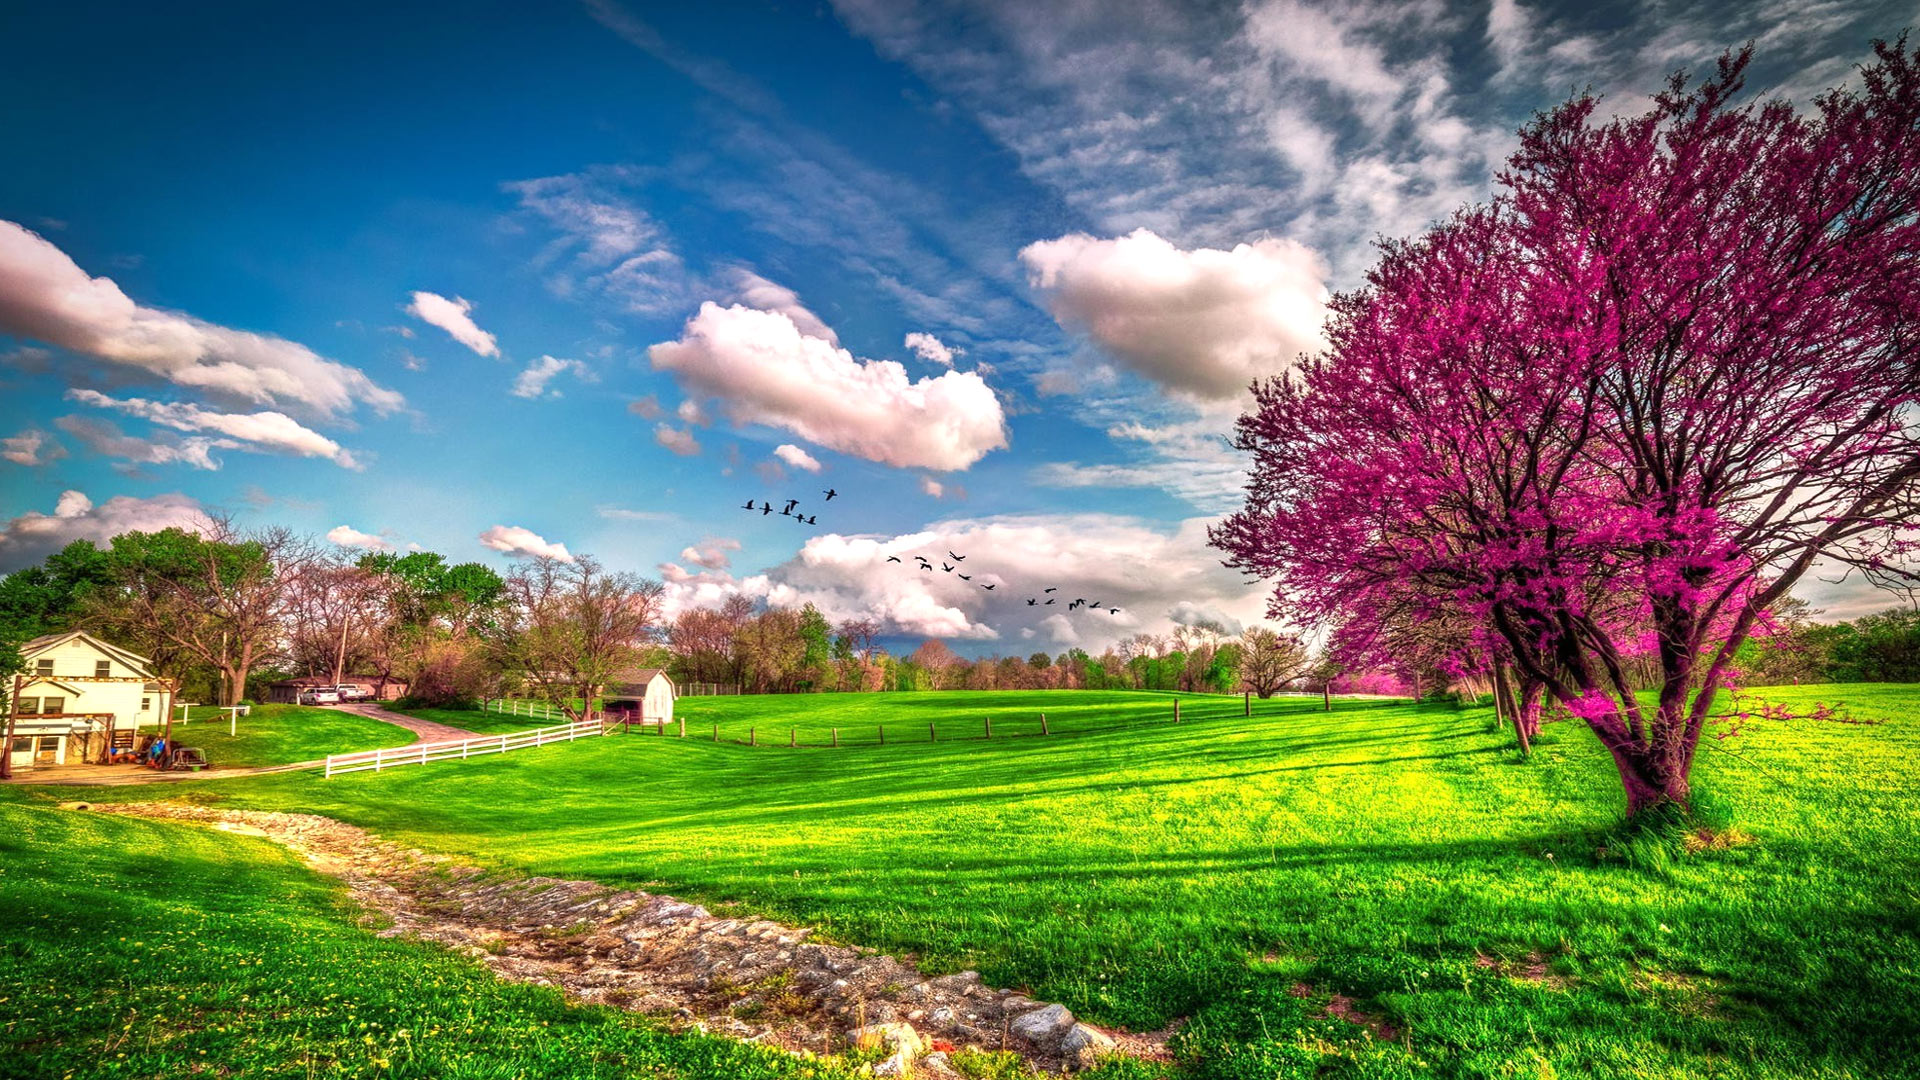 Landscape Beautiful Spring Nature HD Wallpaper